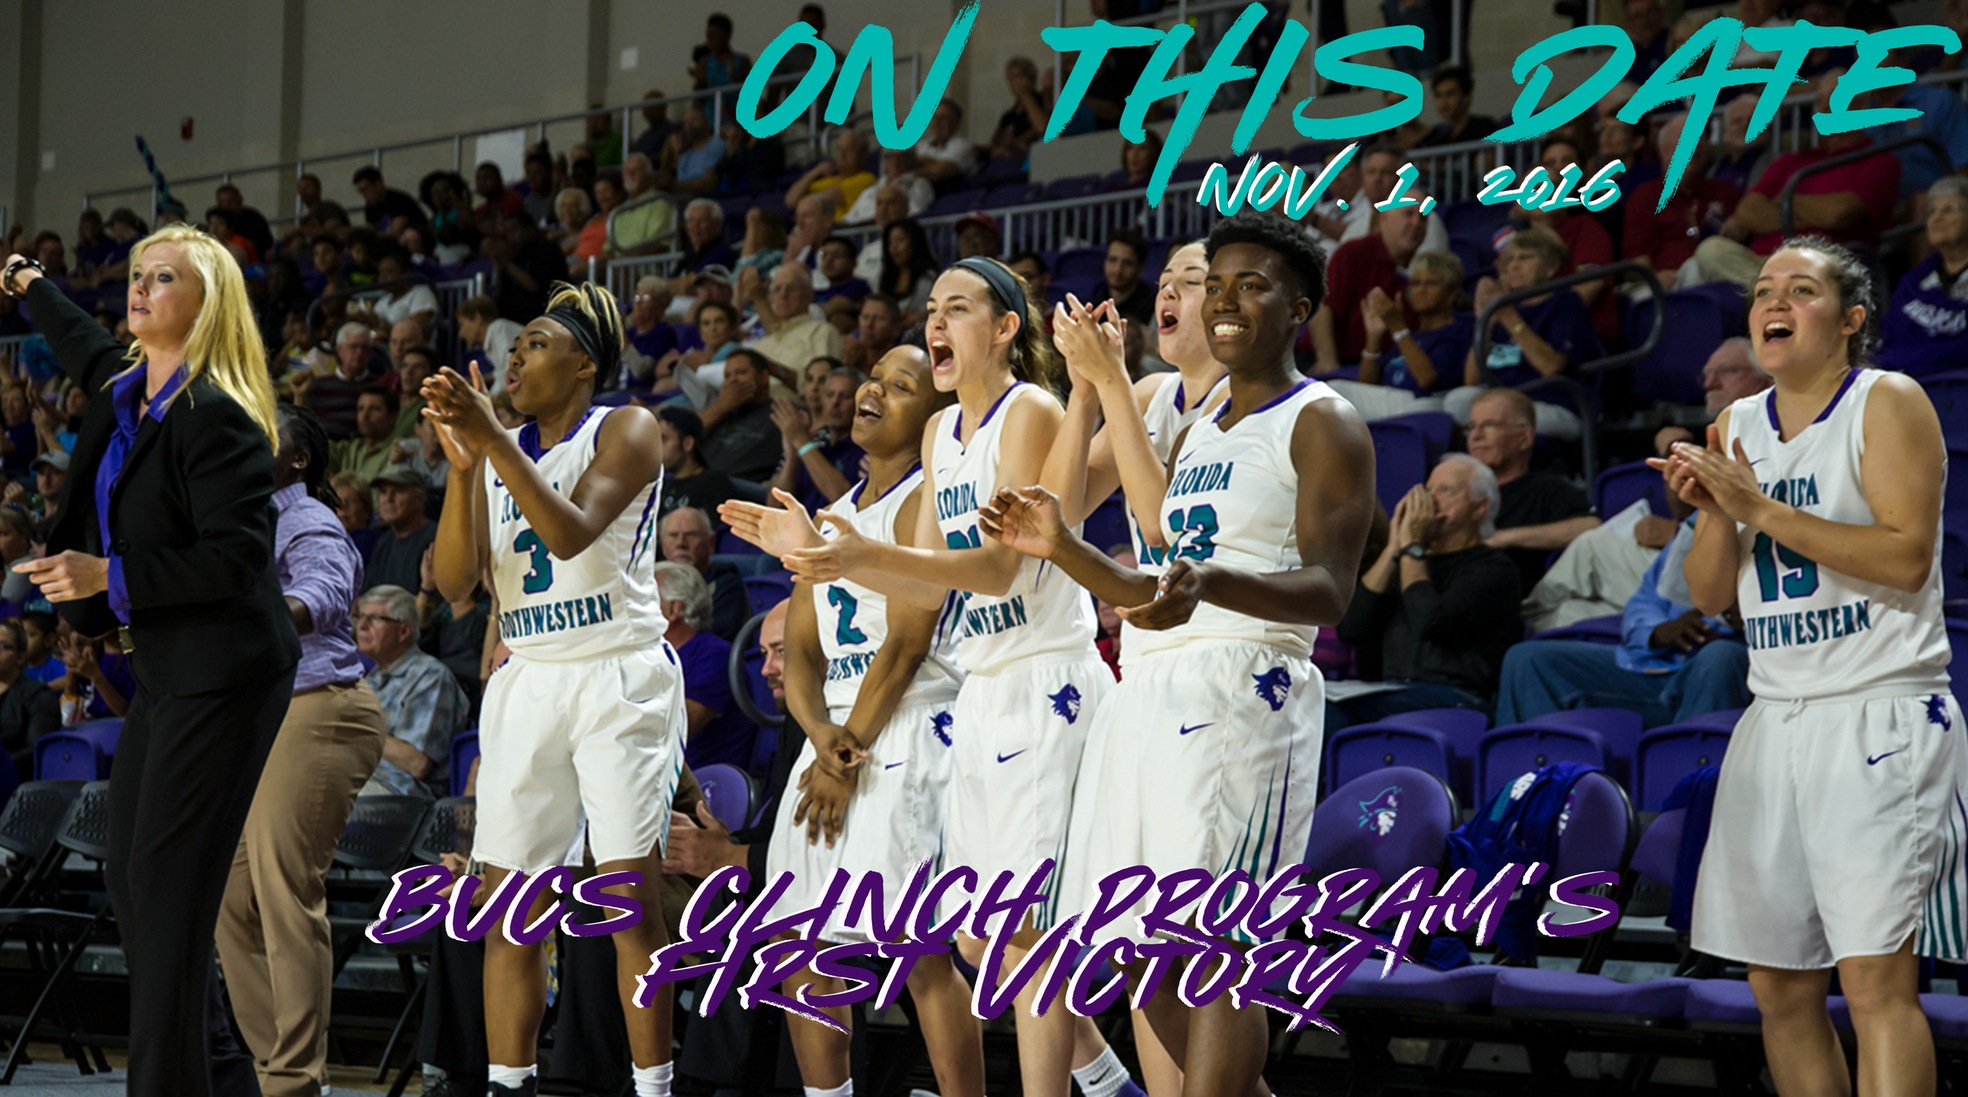 On This Date In FSW Athletics History: Bucs Clinch Program's First Victory